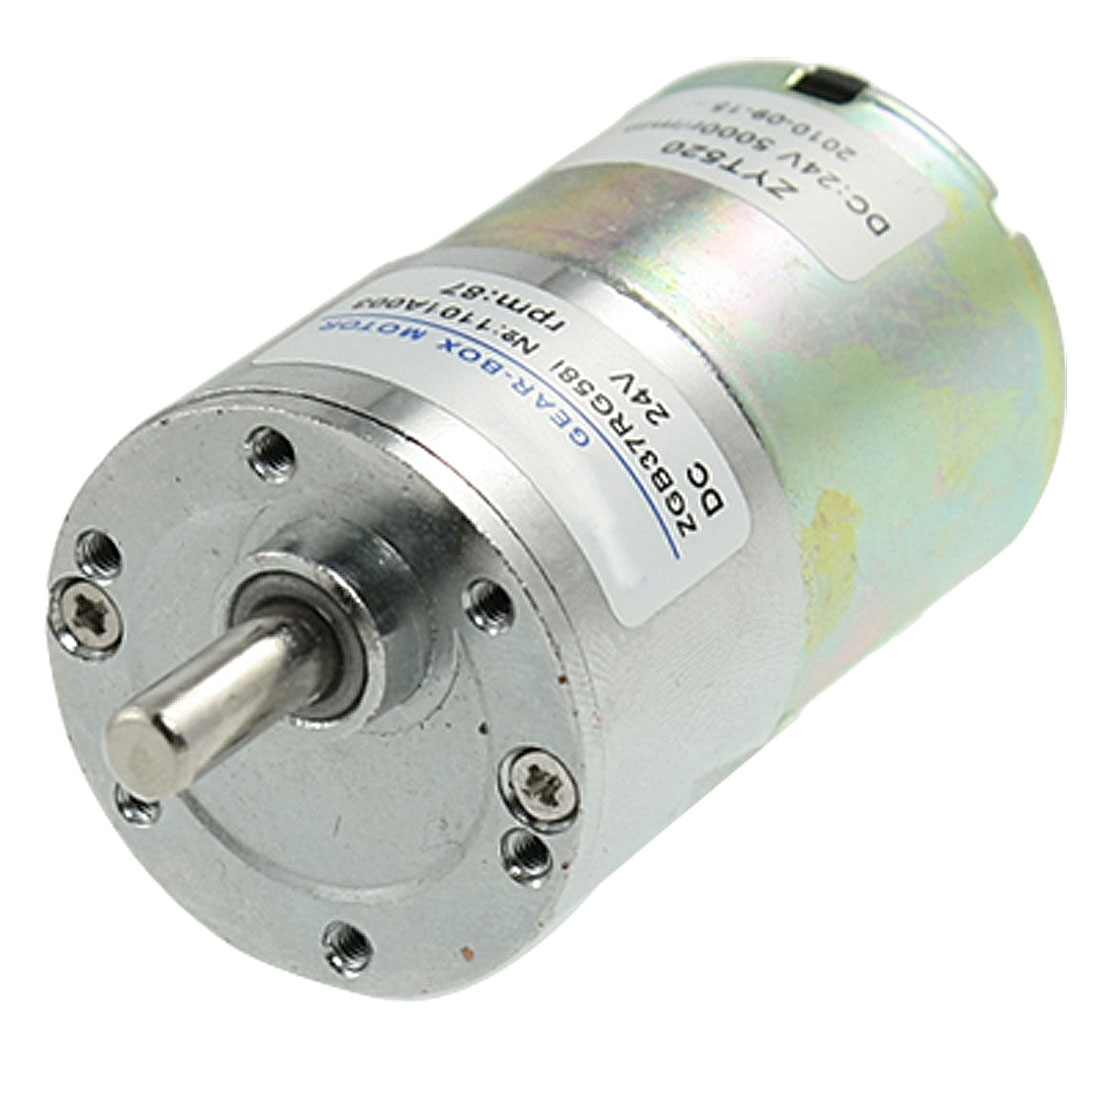 DC 24V 0.33A 87RPM 6mm Dia Shaft Speed Reducing Gearbox Motor